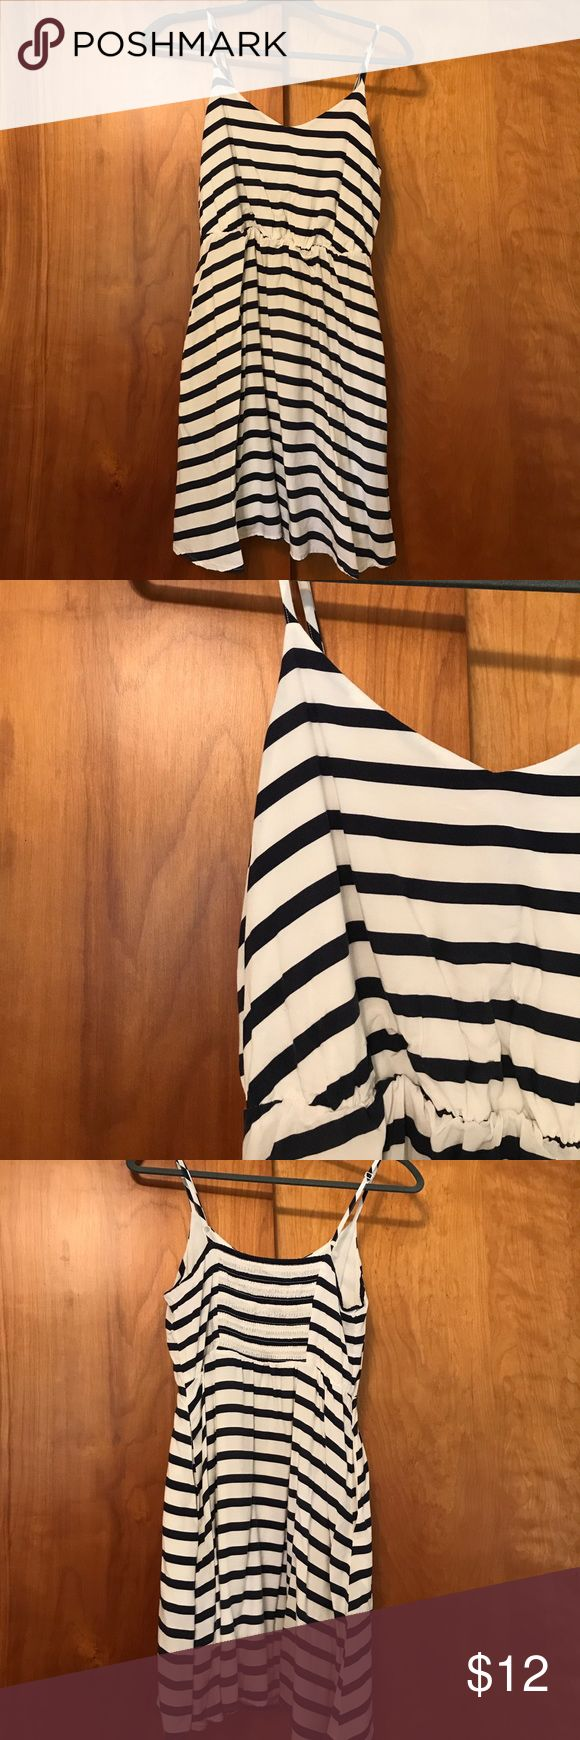 lauren conrad navy striped dress LC by lauren conrad dress. white with navy blue stripes. spaghetti straps, has pockets, and built in slip LC Lauren Conrad Dresses Mini